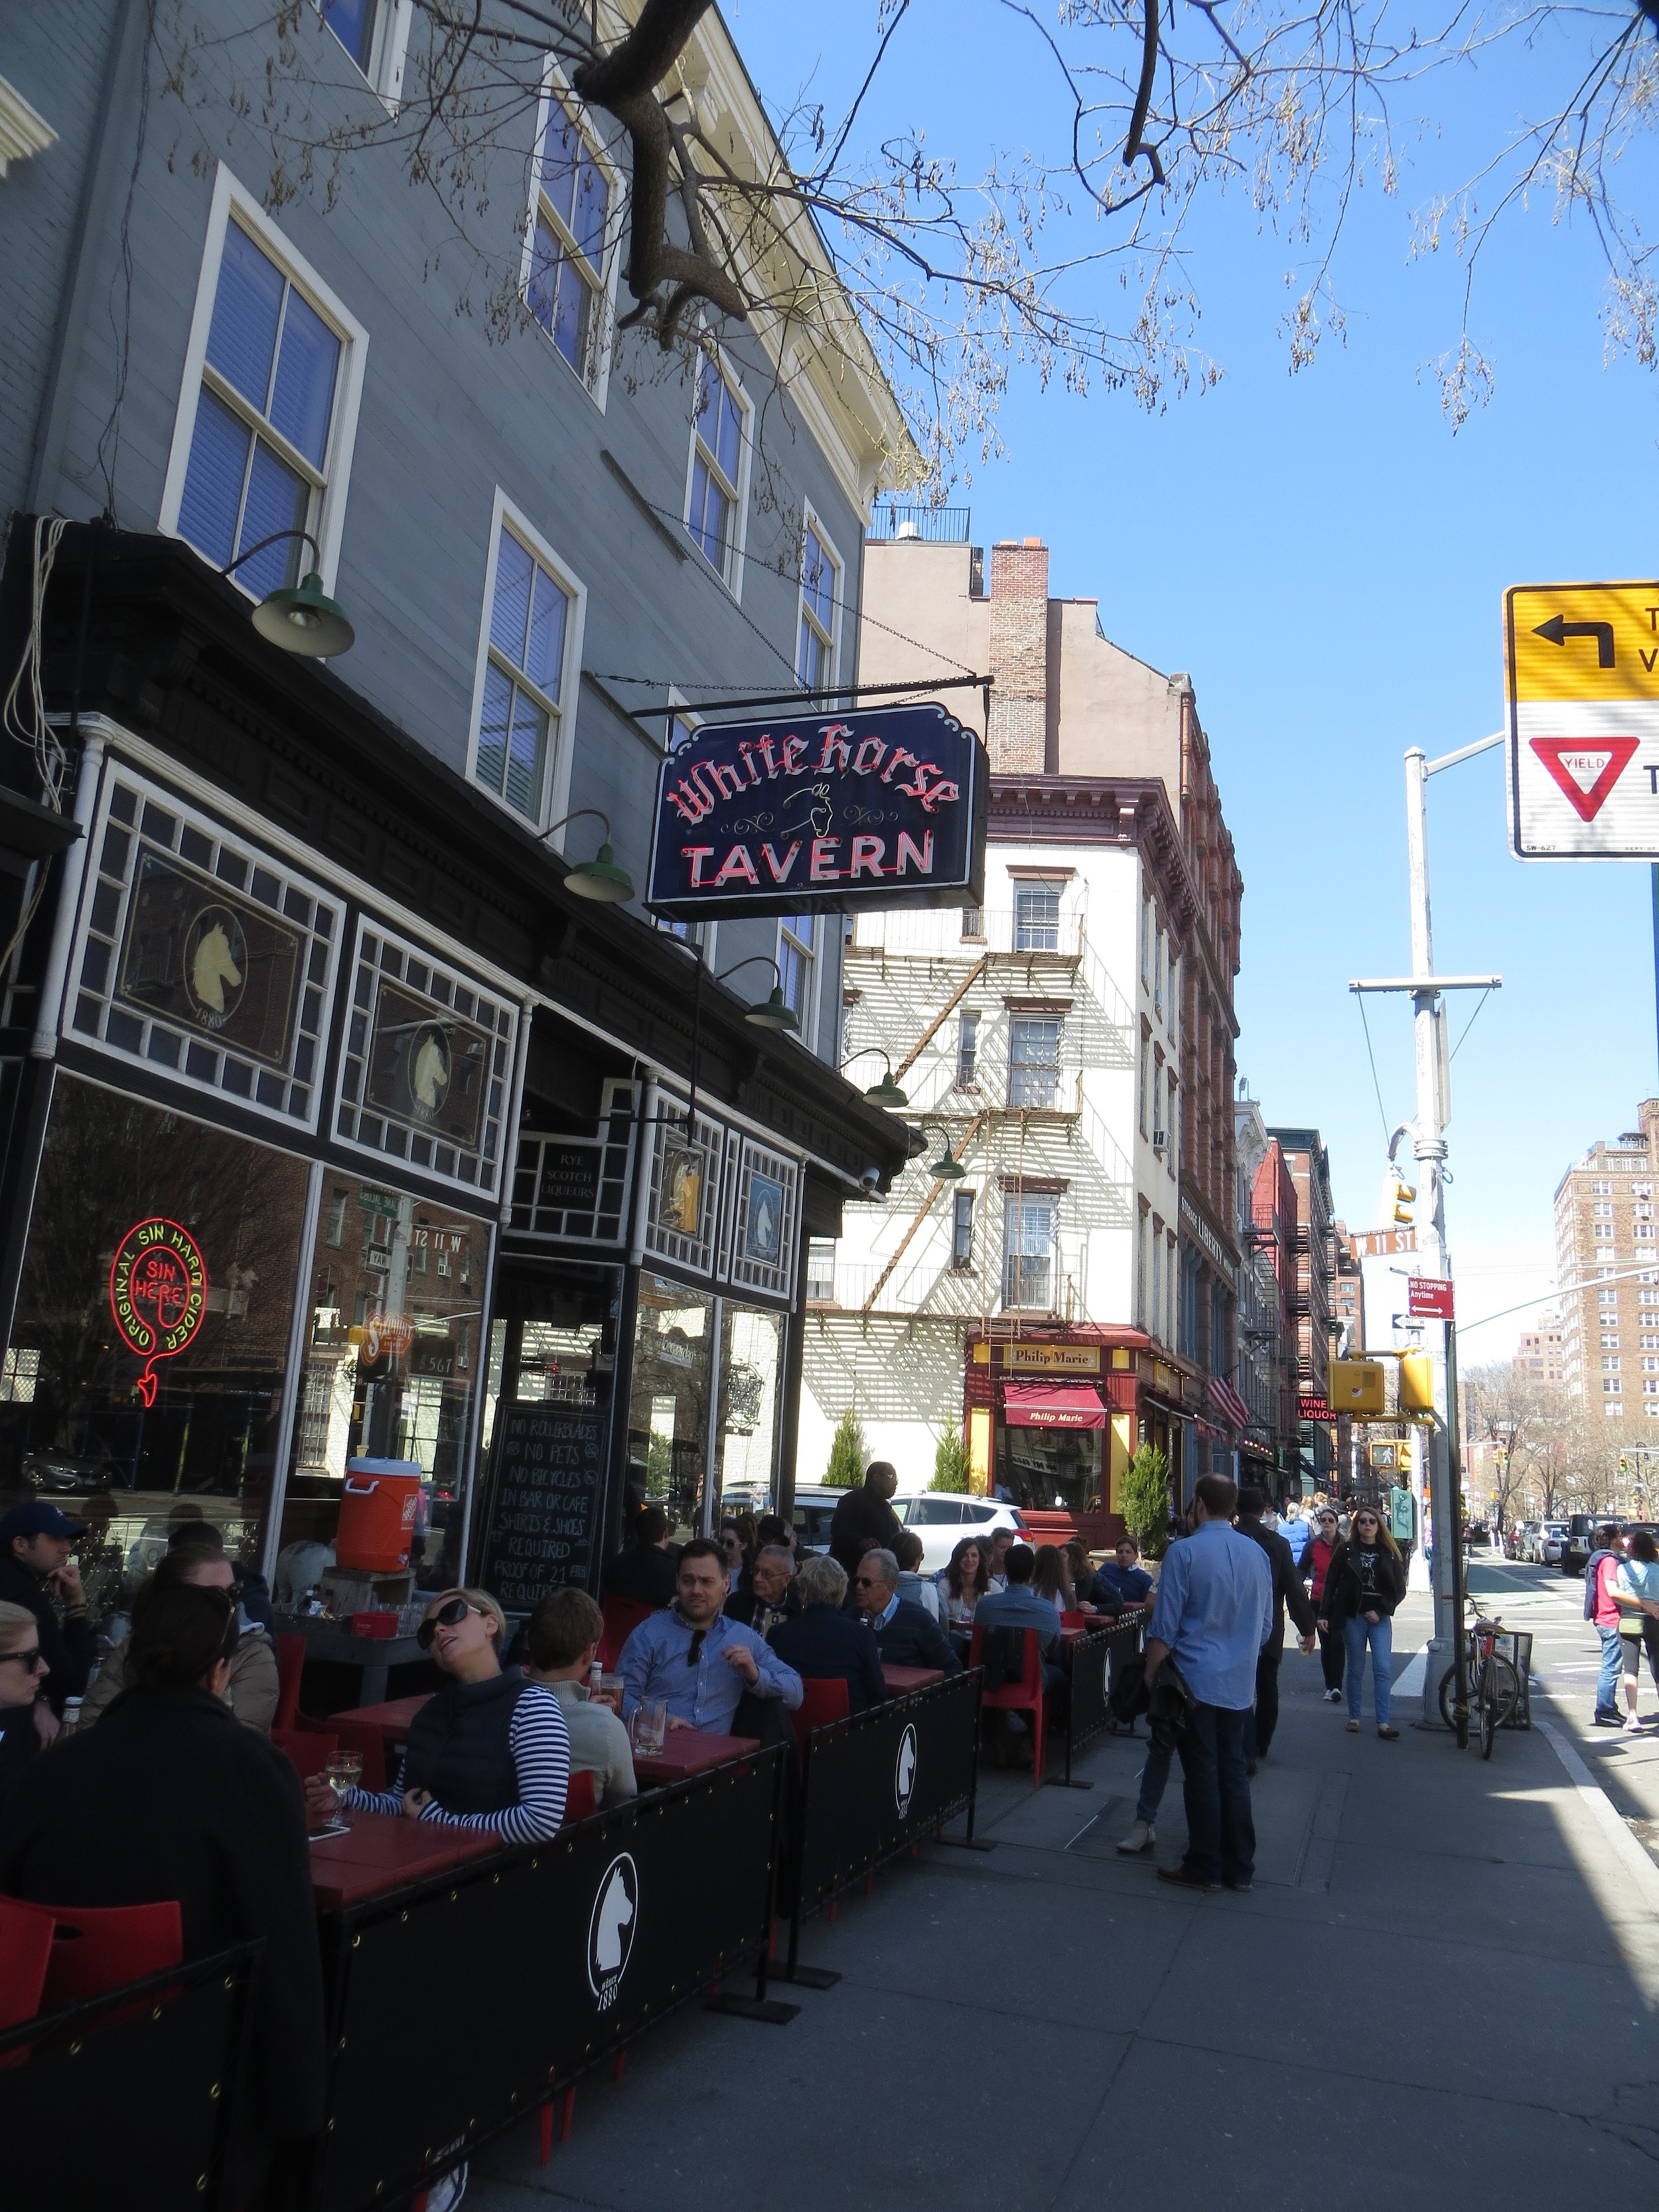 White Horse Tavern (Dylan Thomas got too drunk here and went gentle into that good night)